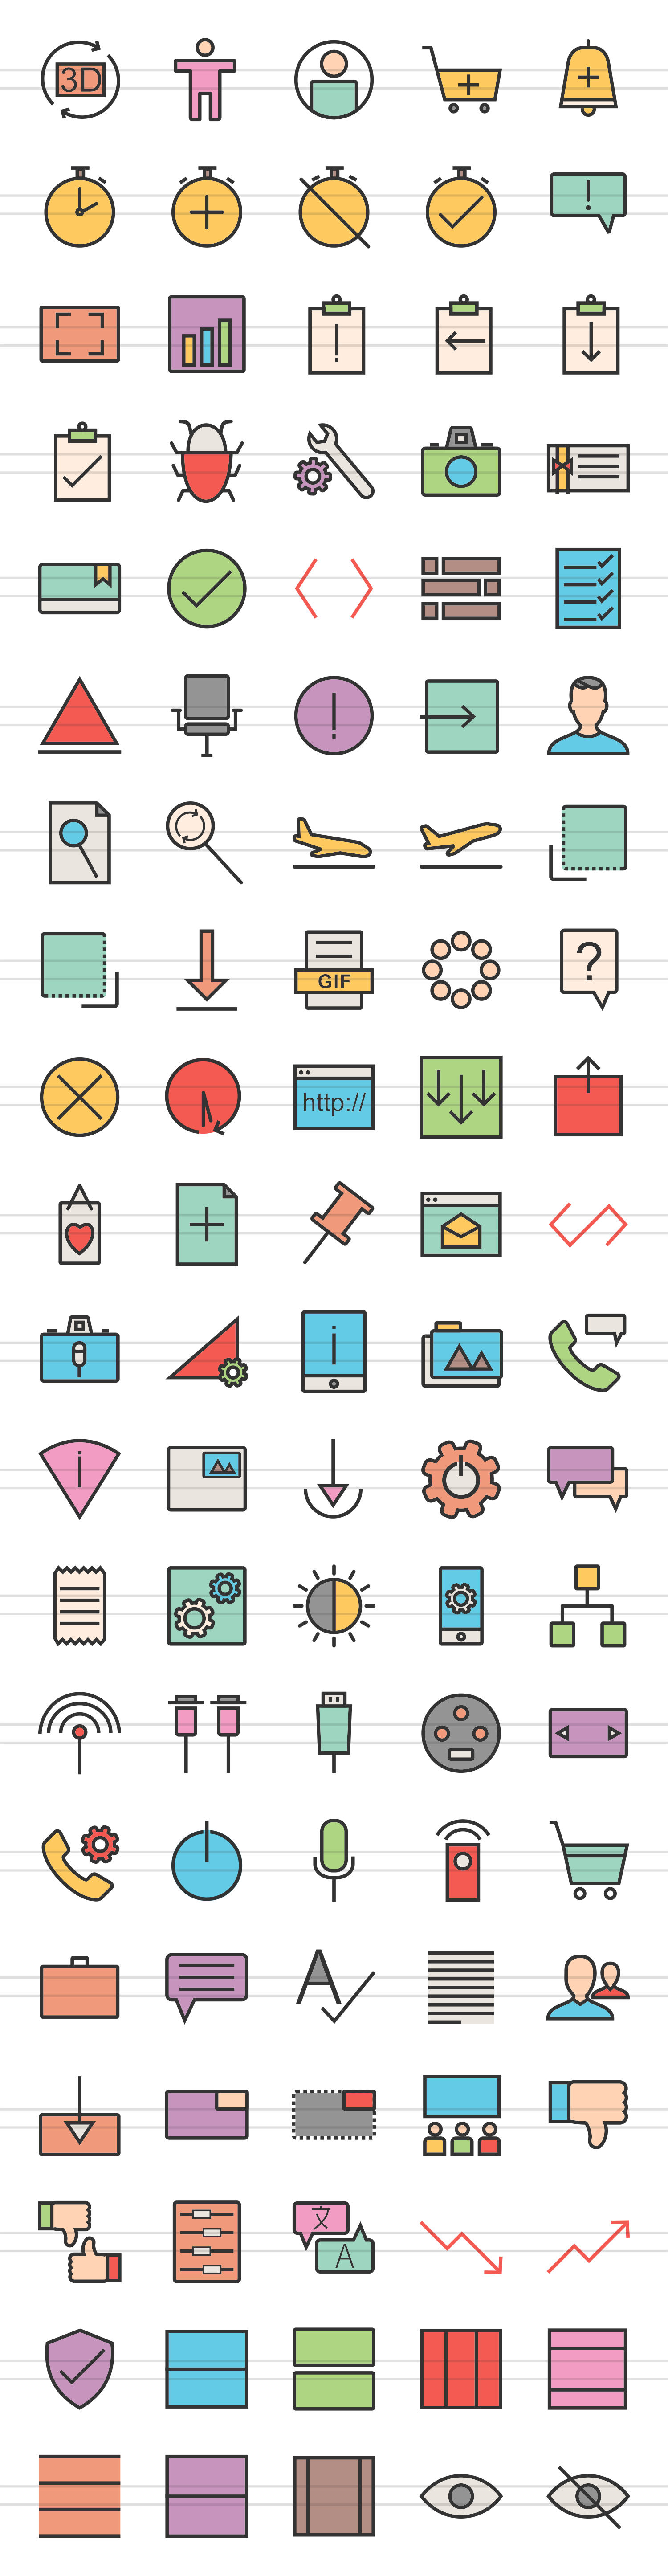 100 Material Design Linear Multicolor Icons example image 2